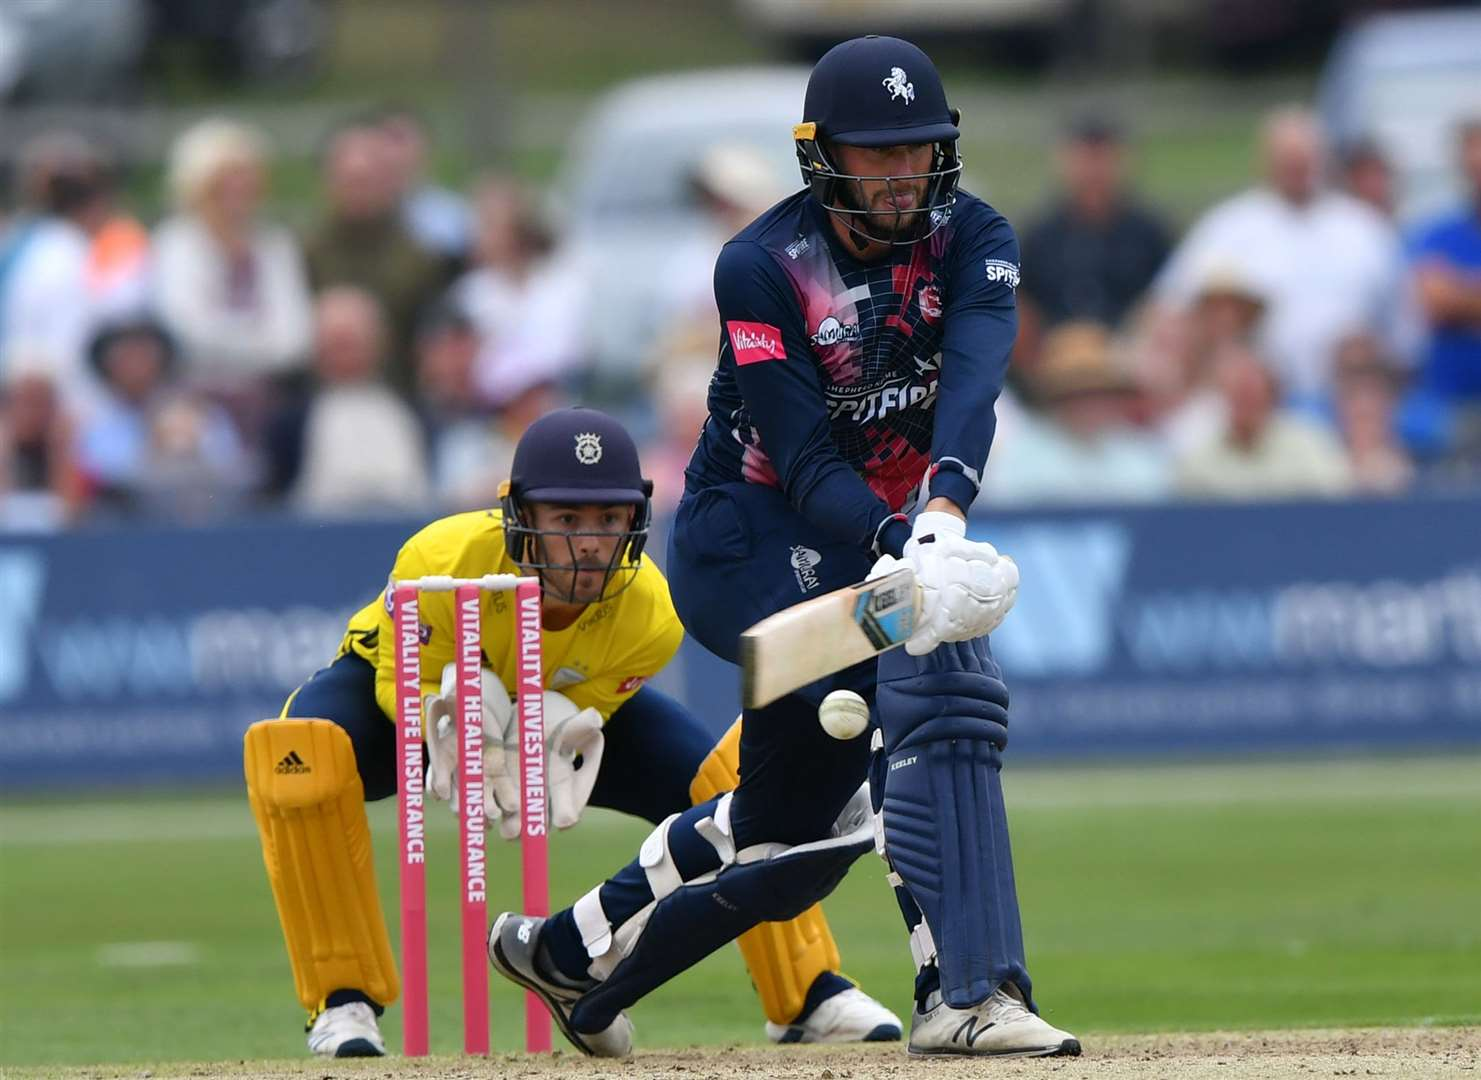 Alex Blake improvises against Hampshire in this year's T20 Blast. Picture: Keith Gillard